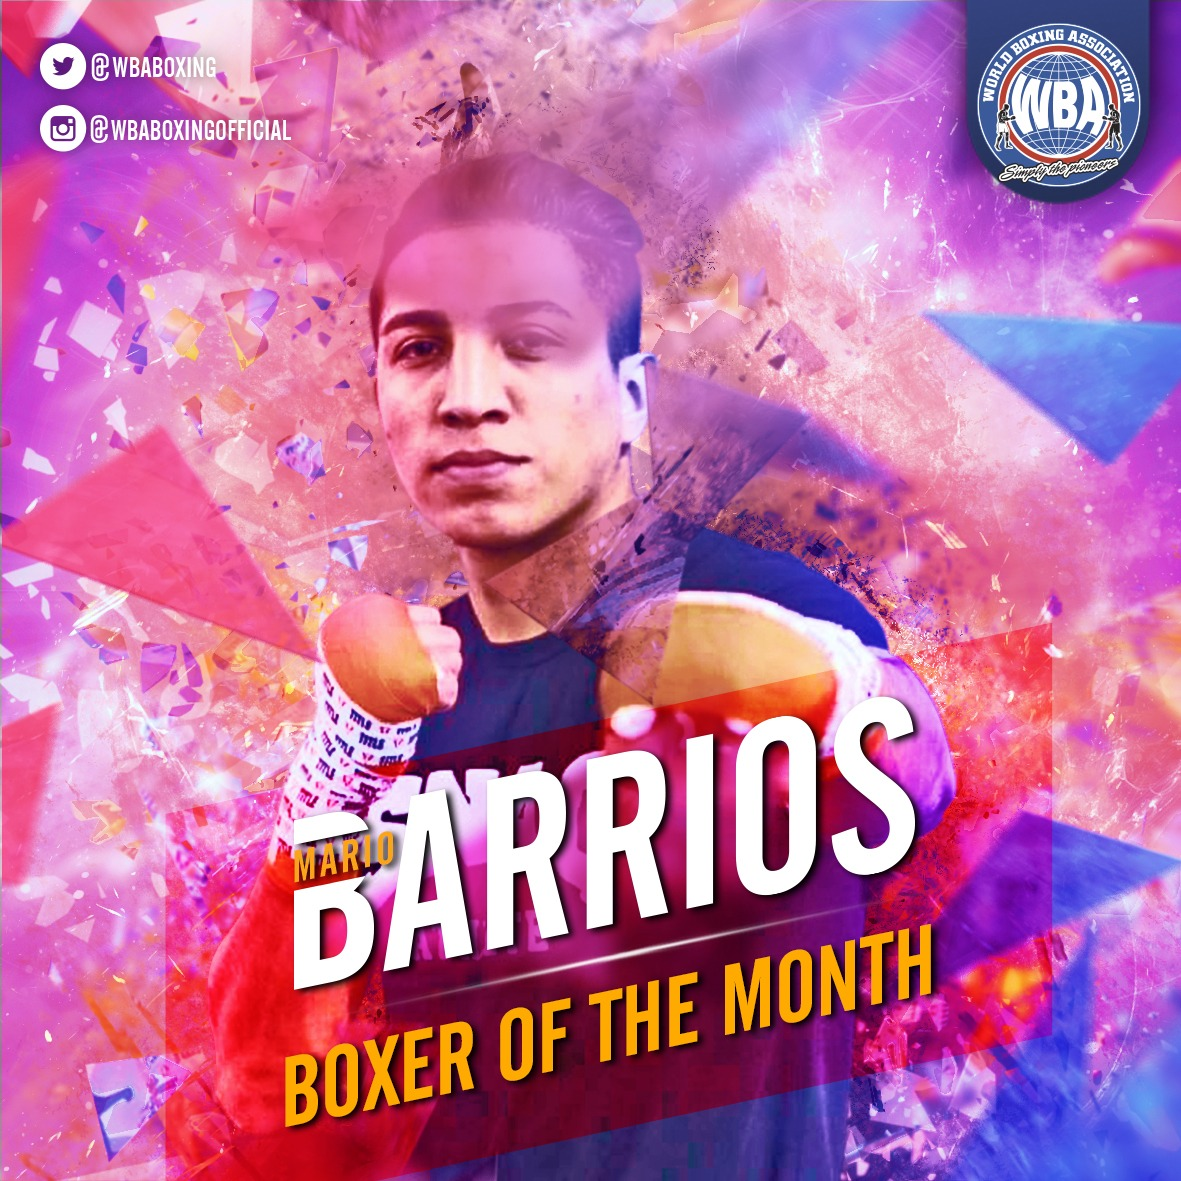 WBA September Rankings and Boxer of the Month